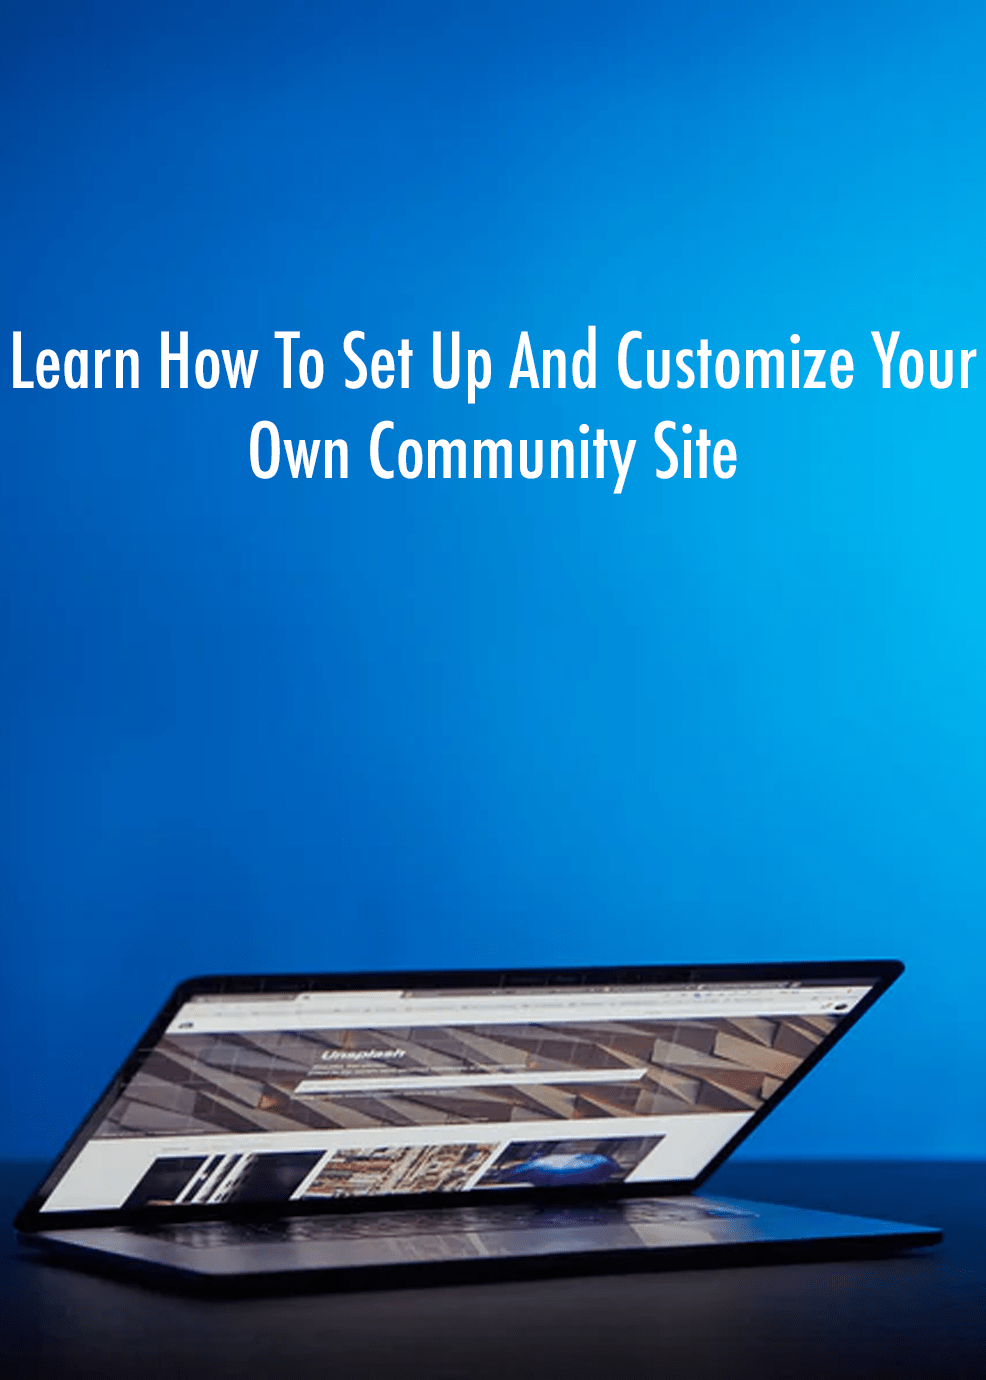 Learn How To Set Up And Customize Your Own Community Site